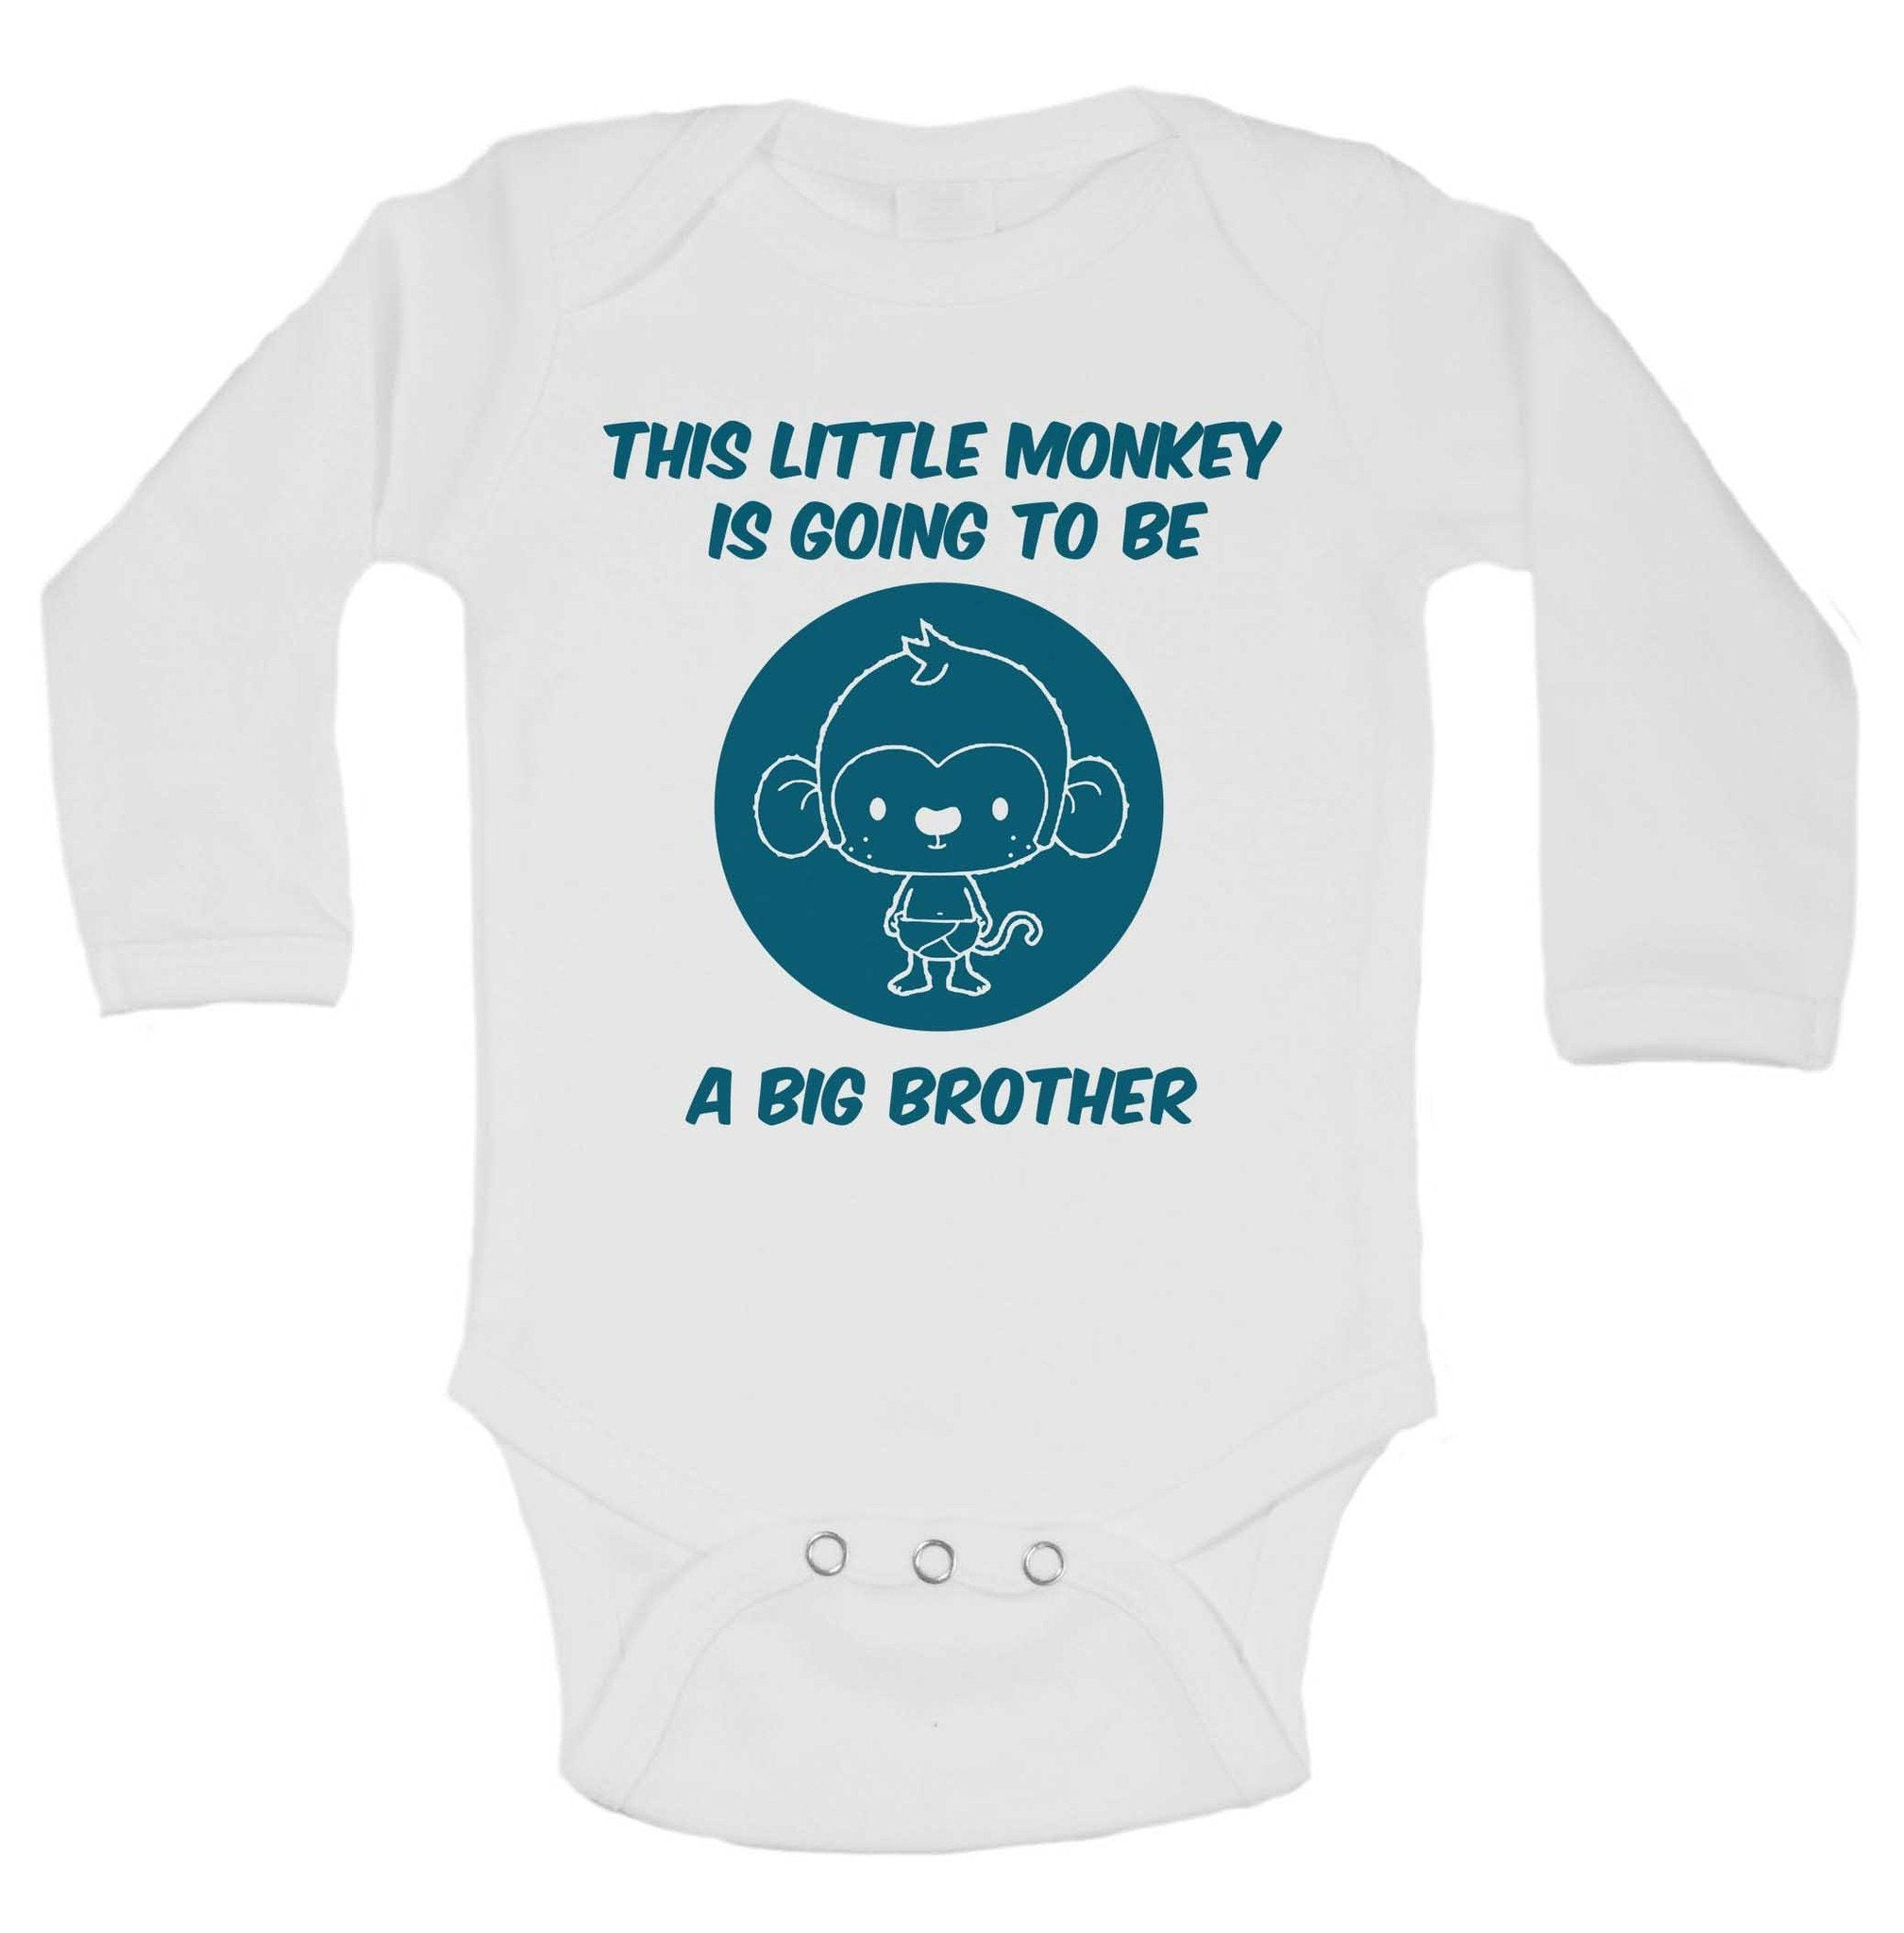 b4cb63655f This Little Monkey Is Going To Be A Big Brother Funny Kids Onesie